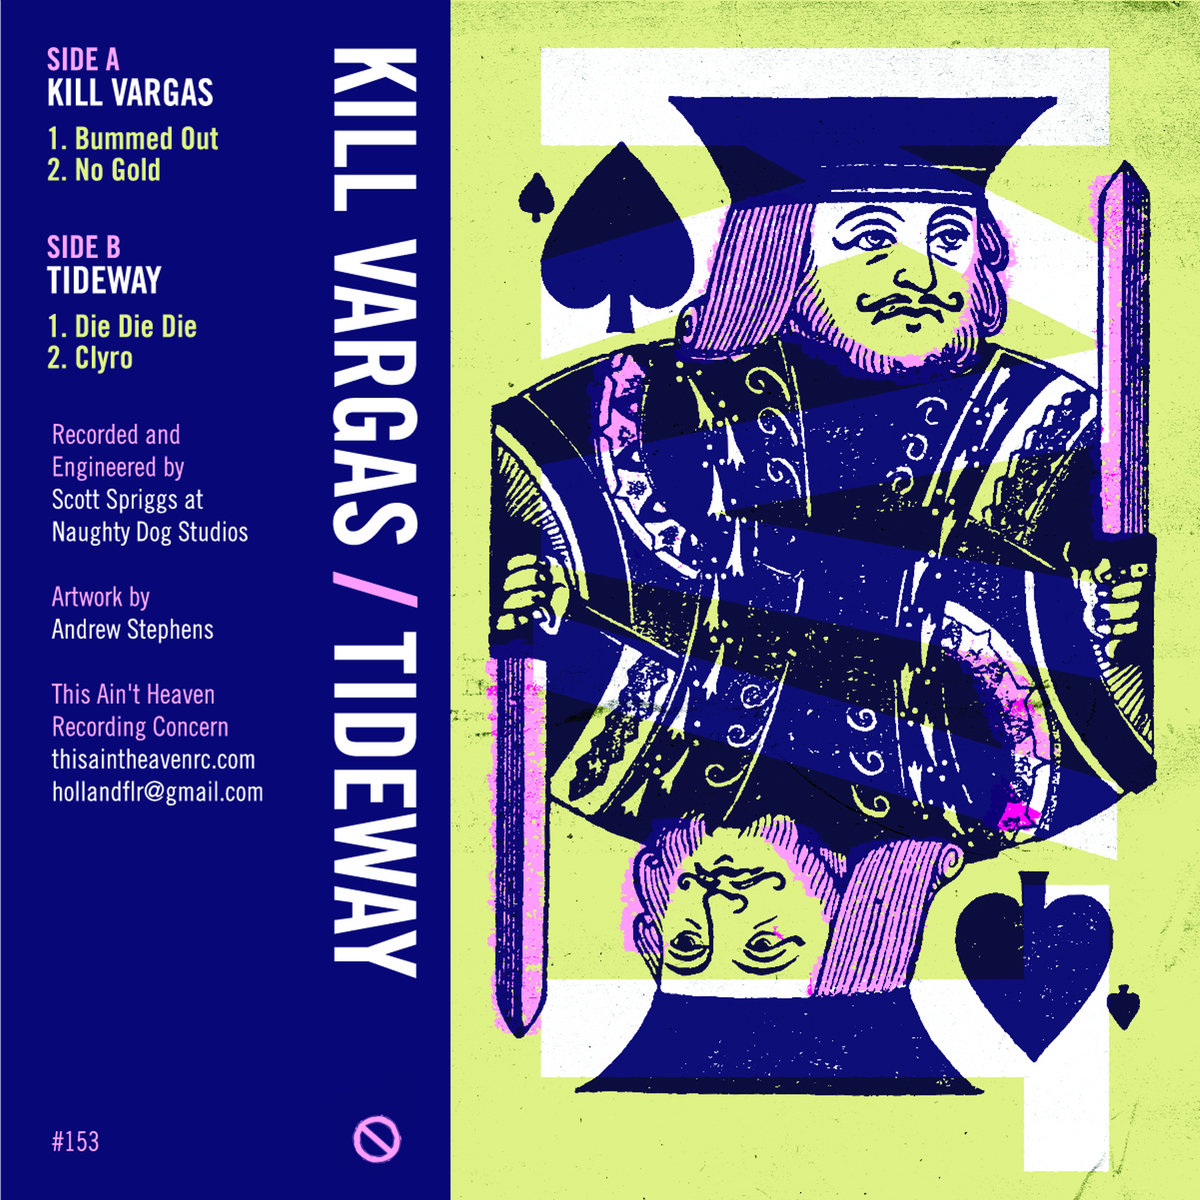 Kill Vargas Bummed Out This Aint Heaven Recording Concern Bargaz Dark Blue From Split Tahrc 153 By Tideway